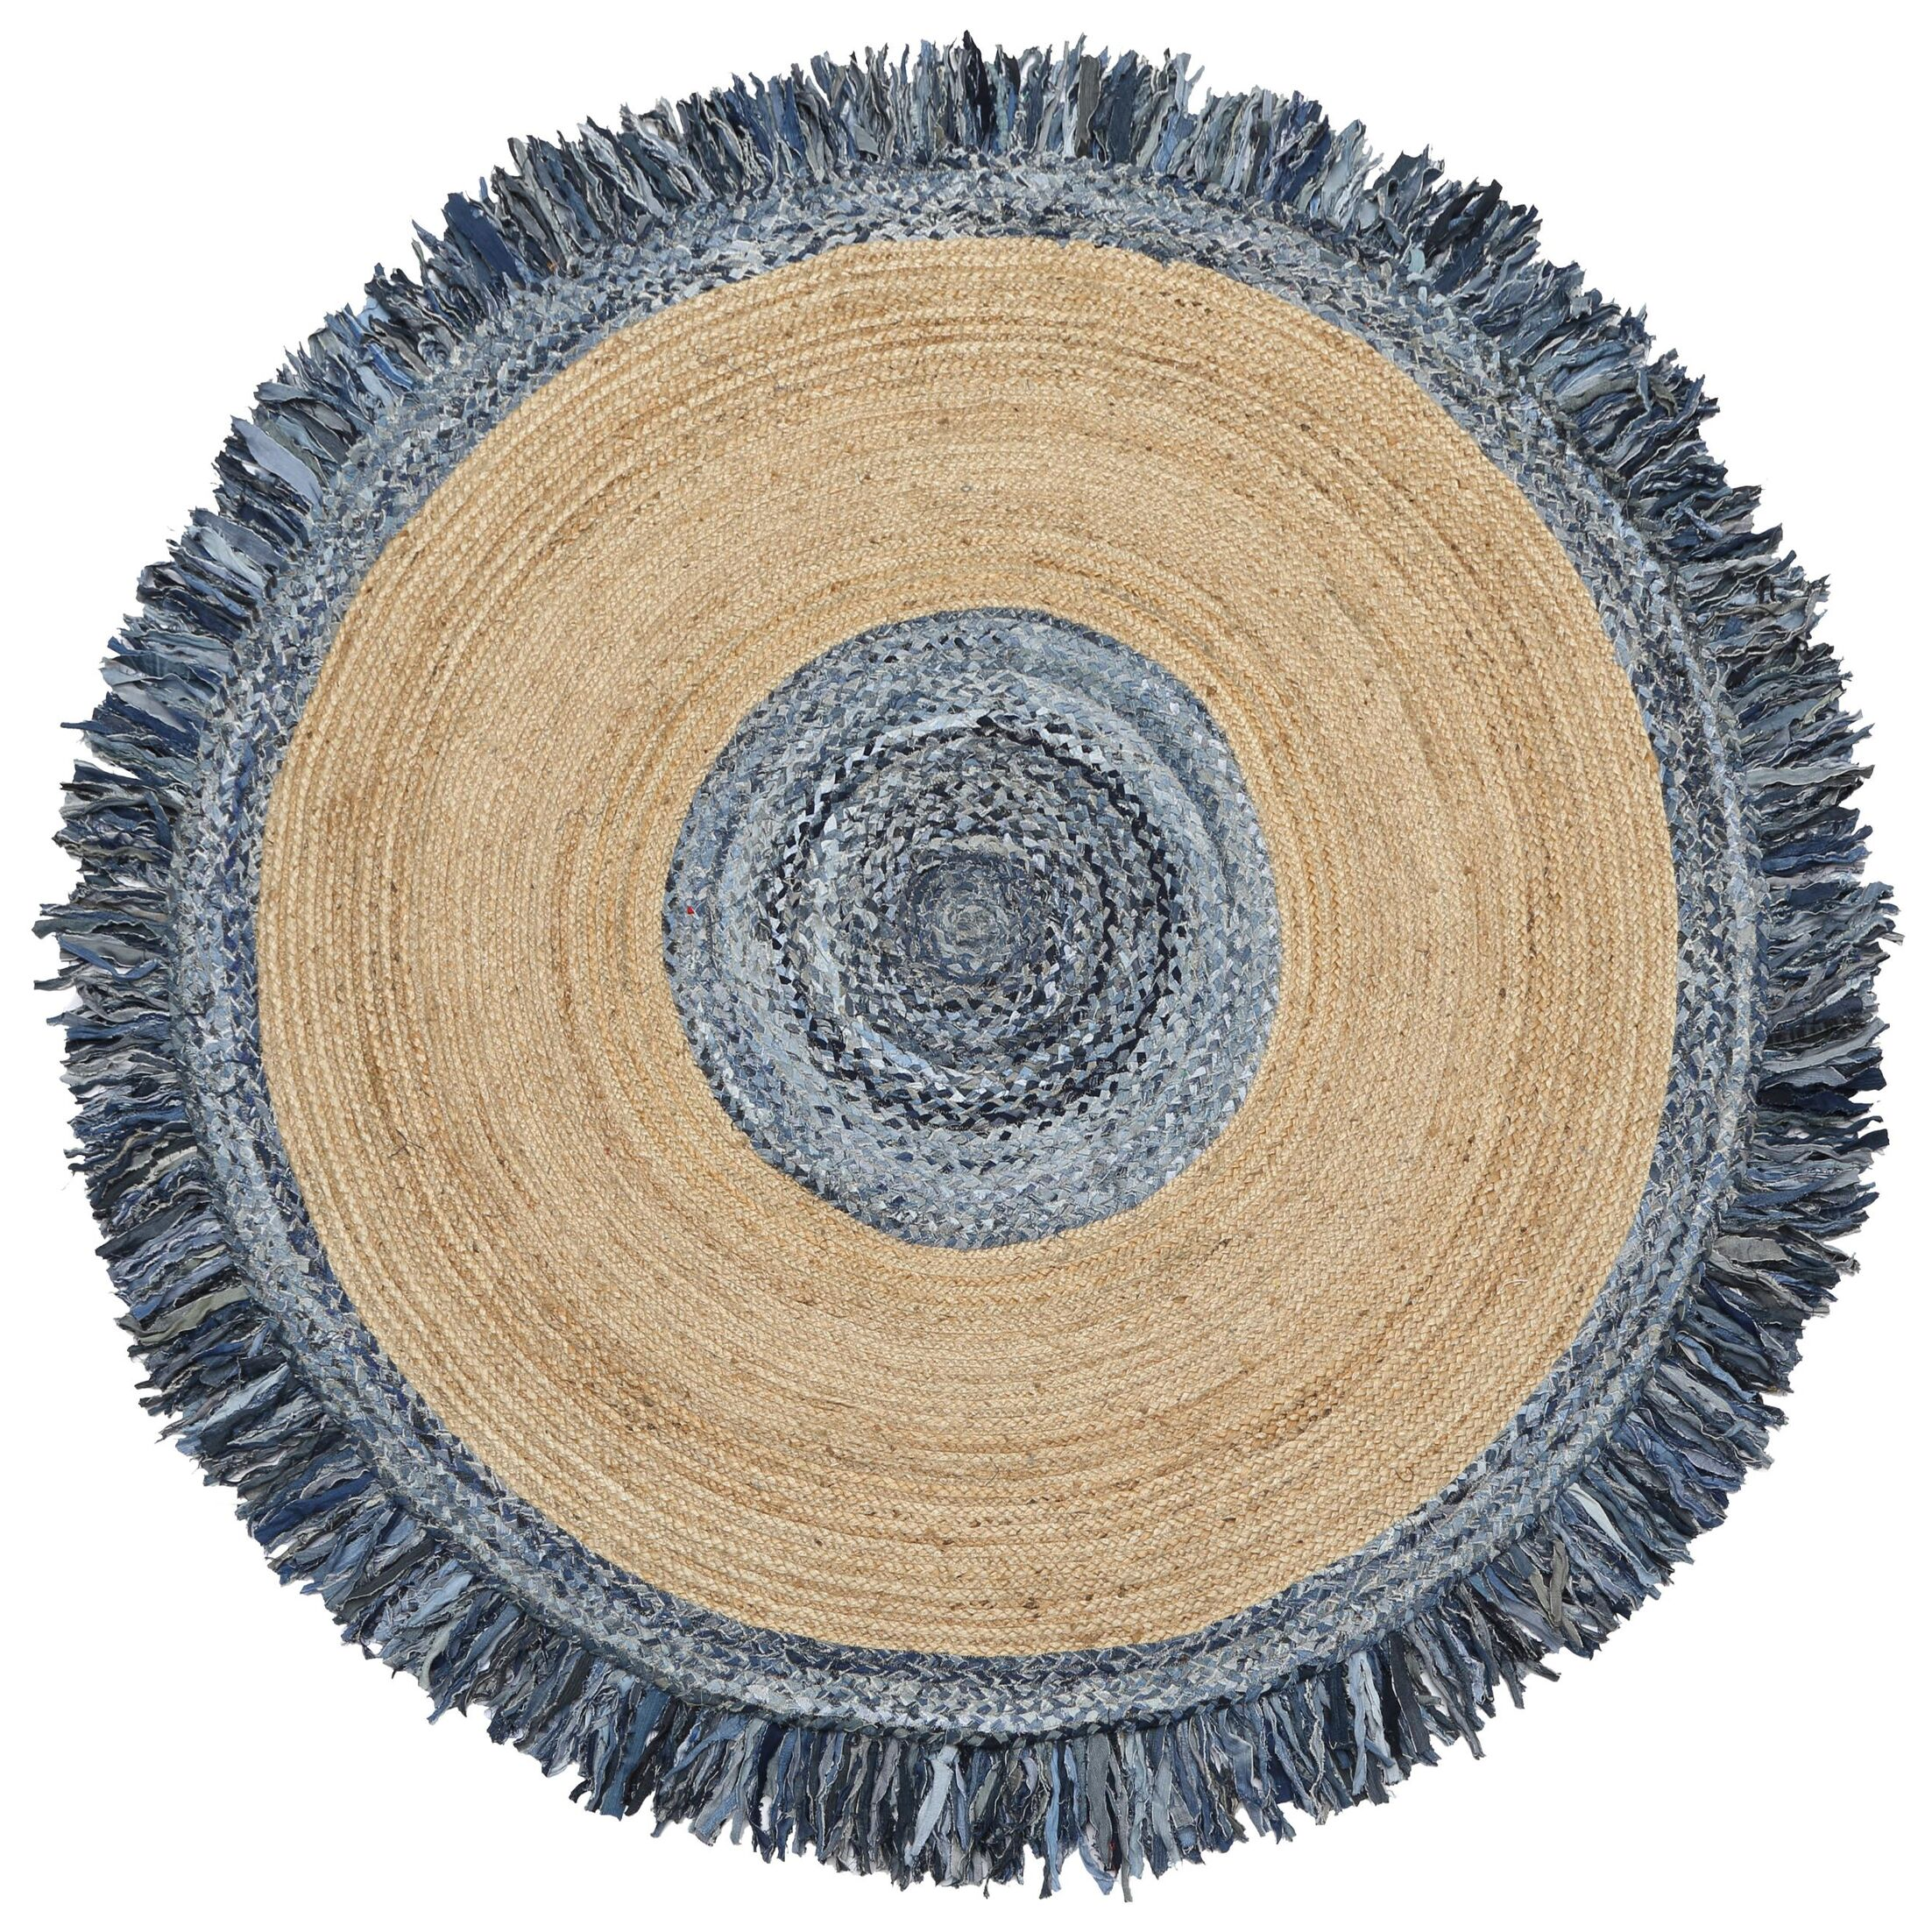 Latour Round Racetrack Hand-Loomed Blue/Gray Area Rug Rug Size: Round 8'